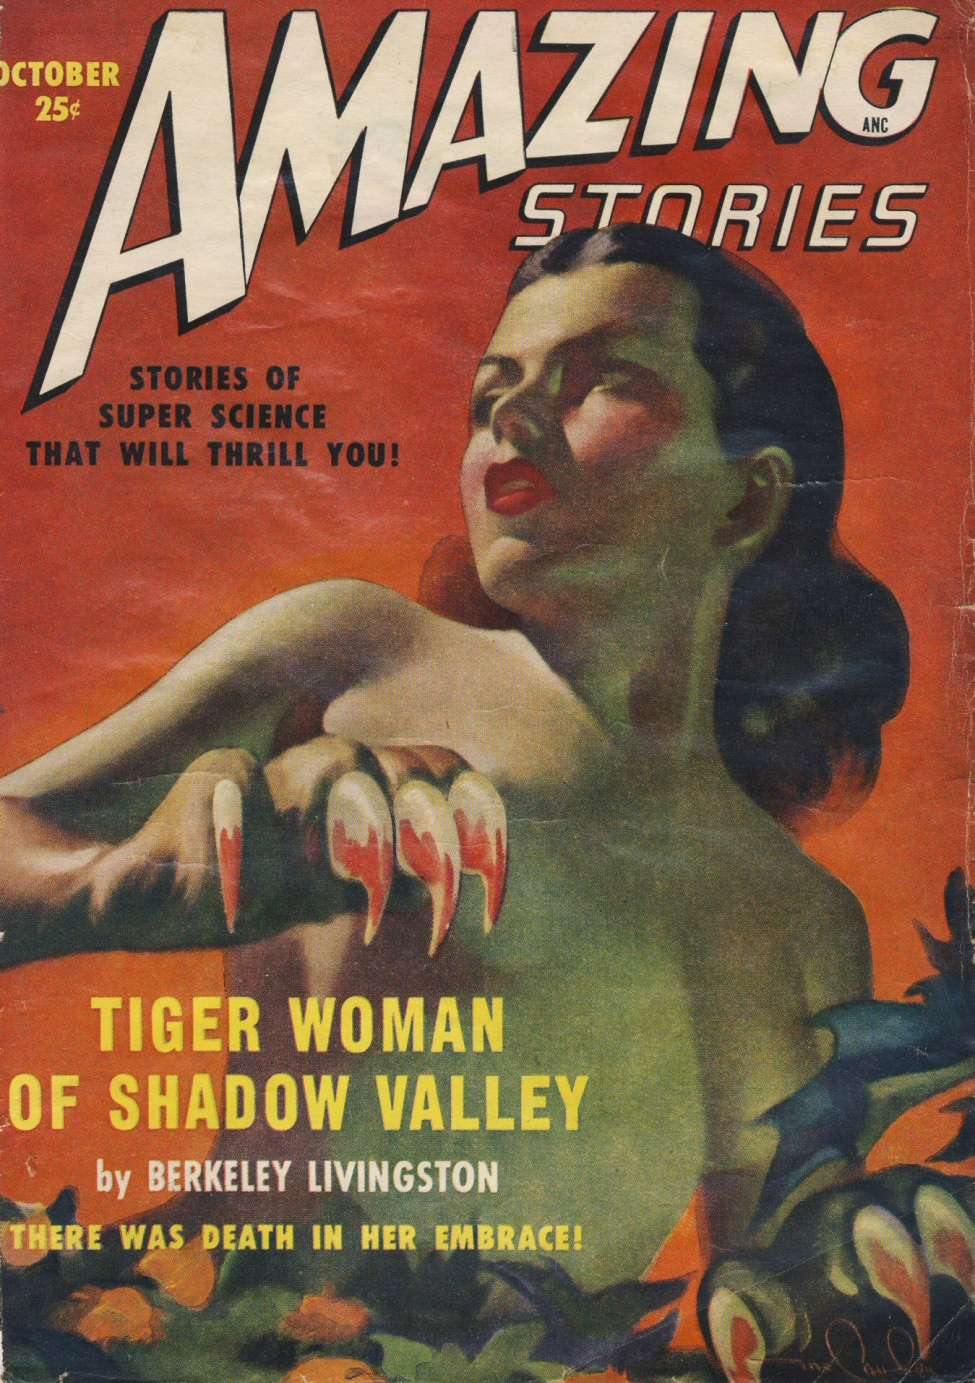 Comic Book Cover For Amazing Stories v23 10 - Tiger Woman of Shadow Valley - Berkeley Livingston